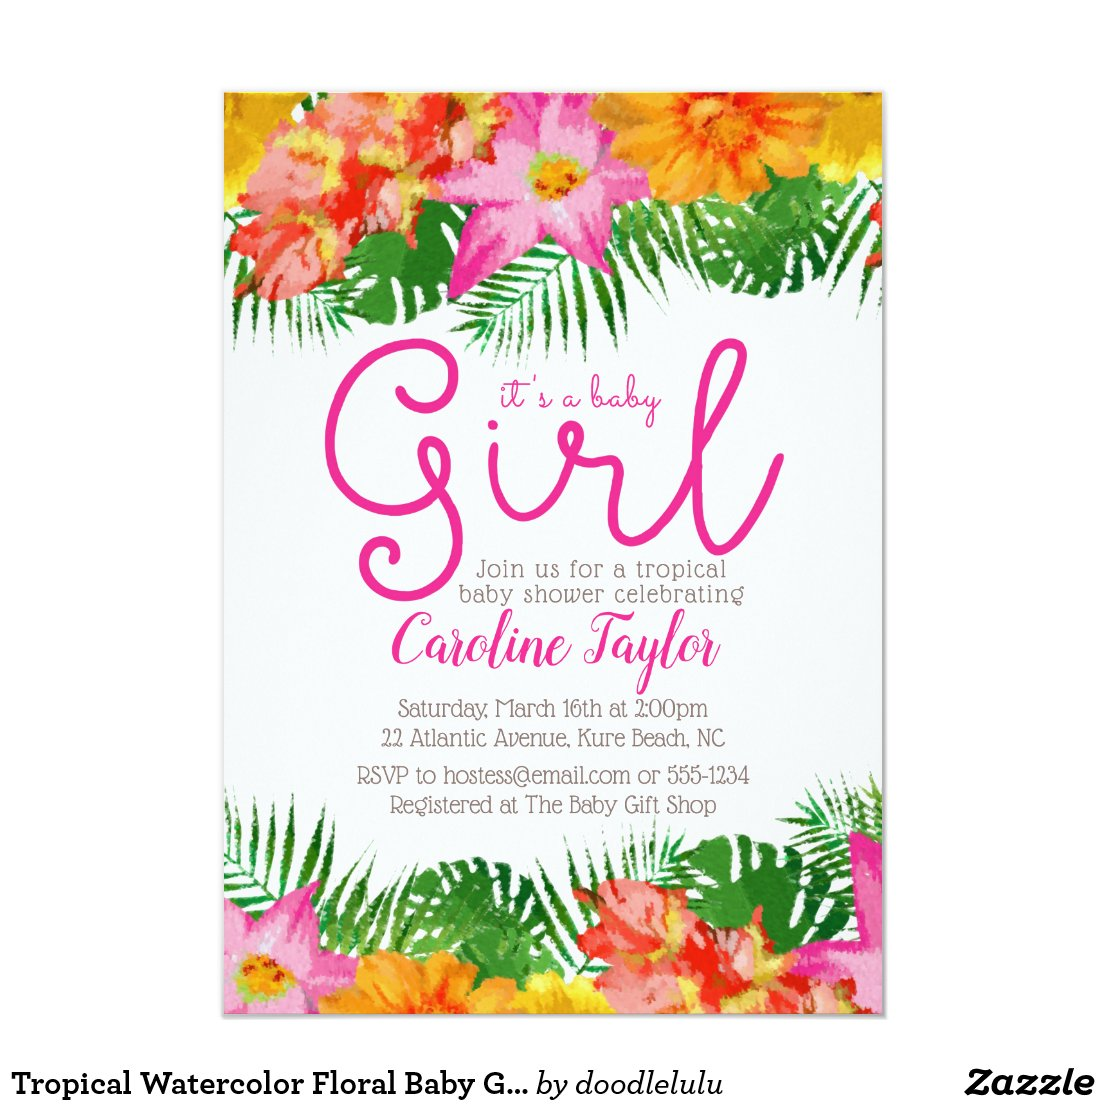 Tropical Watercolor Baby Shower Invitation